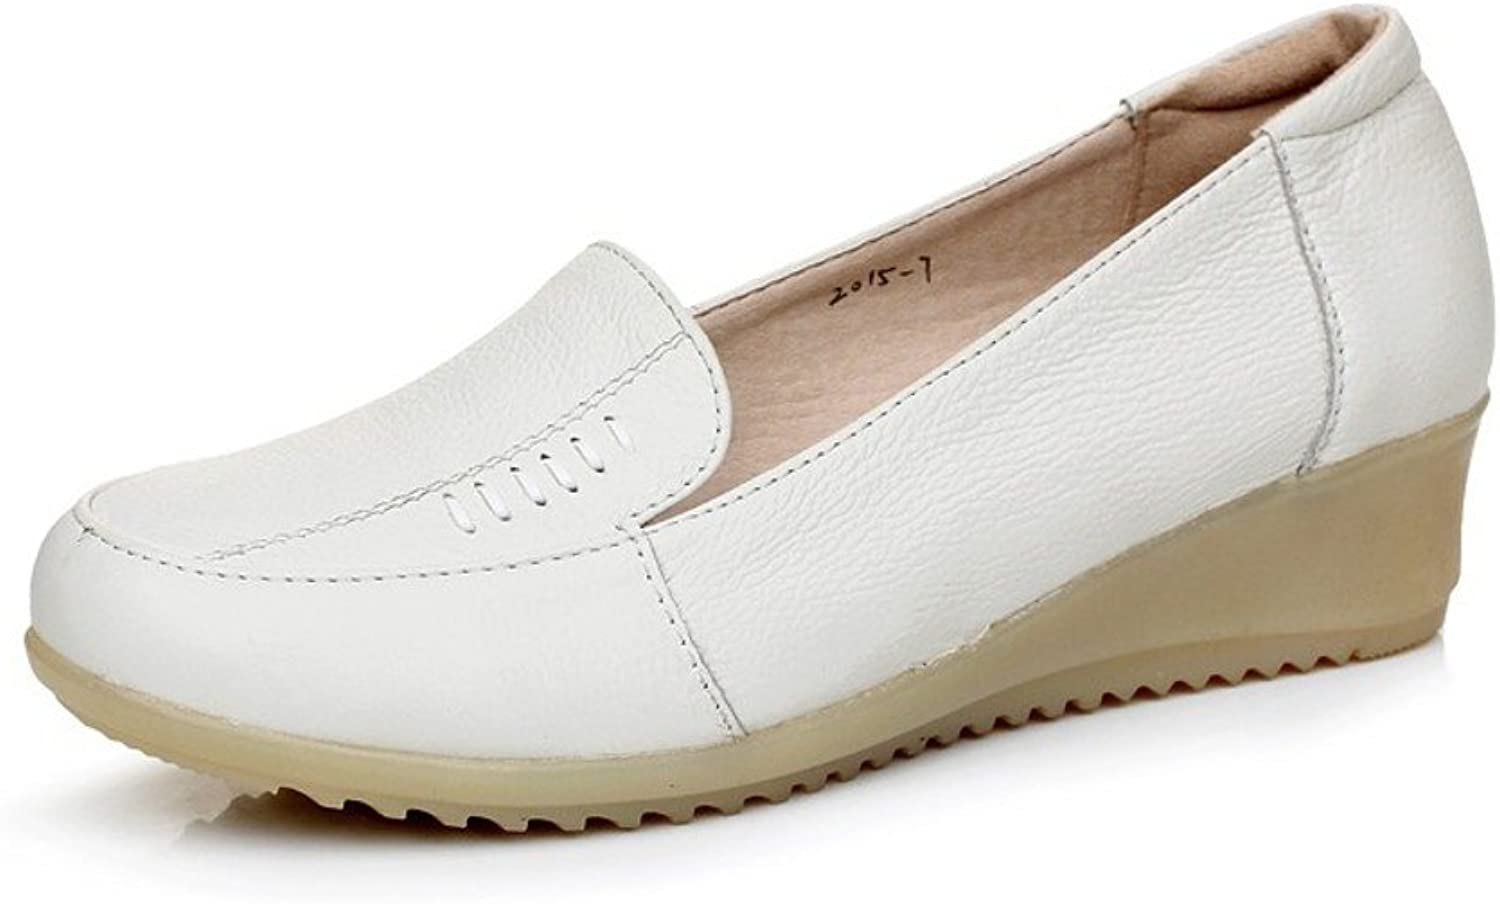 MET RXL Ladies Leather shoes Round-Headed for a Comfortable Casual shoes Beef Tendon Comfortable Nursing shoes at The end of